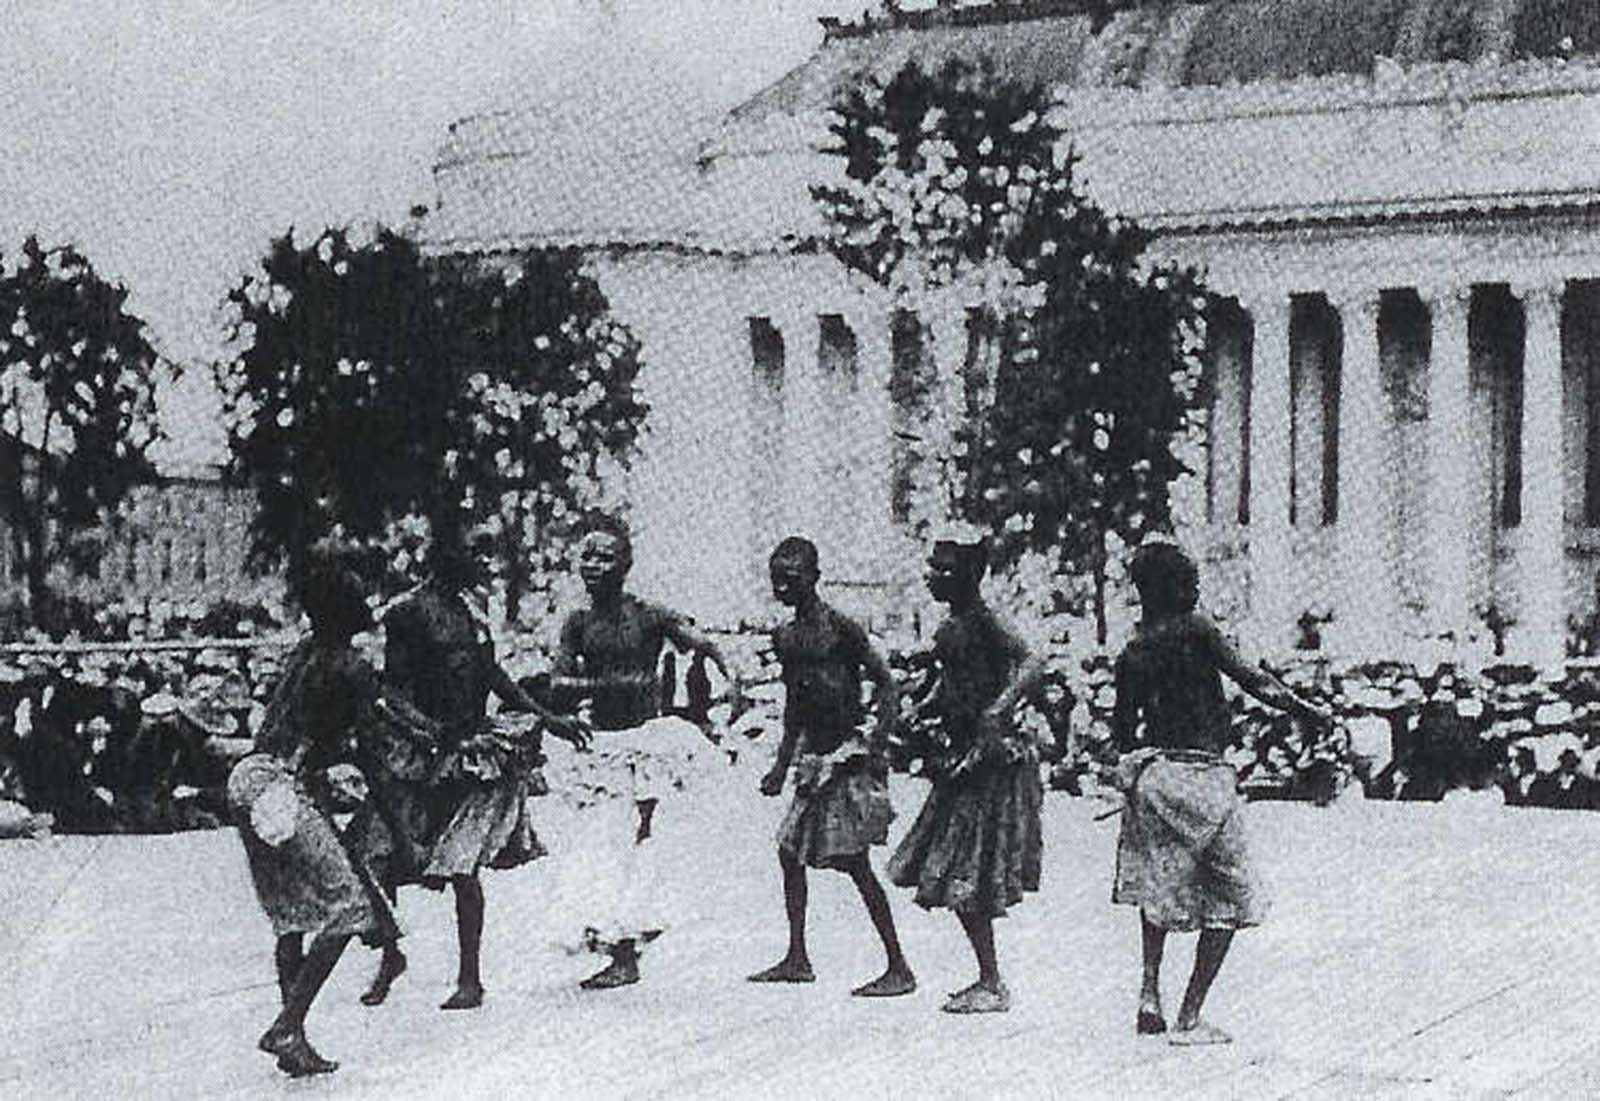 A Congolese Pygmy tribe dances at the St. Louis World Fair in 1904.